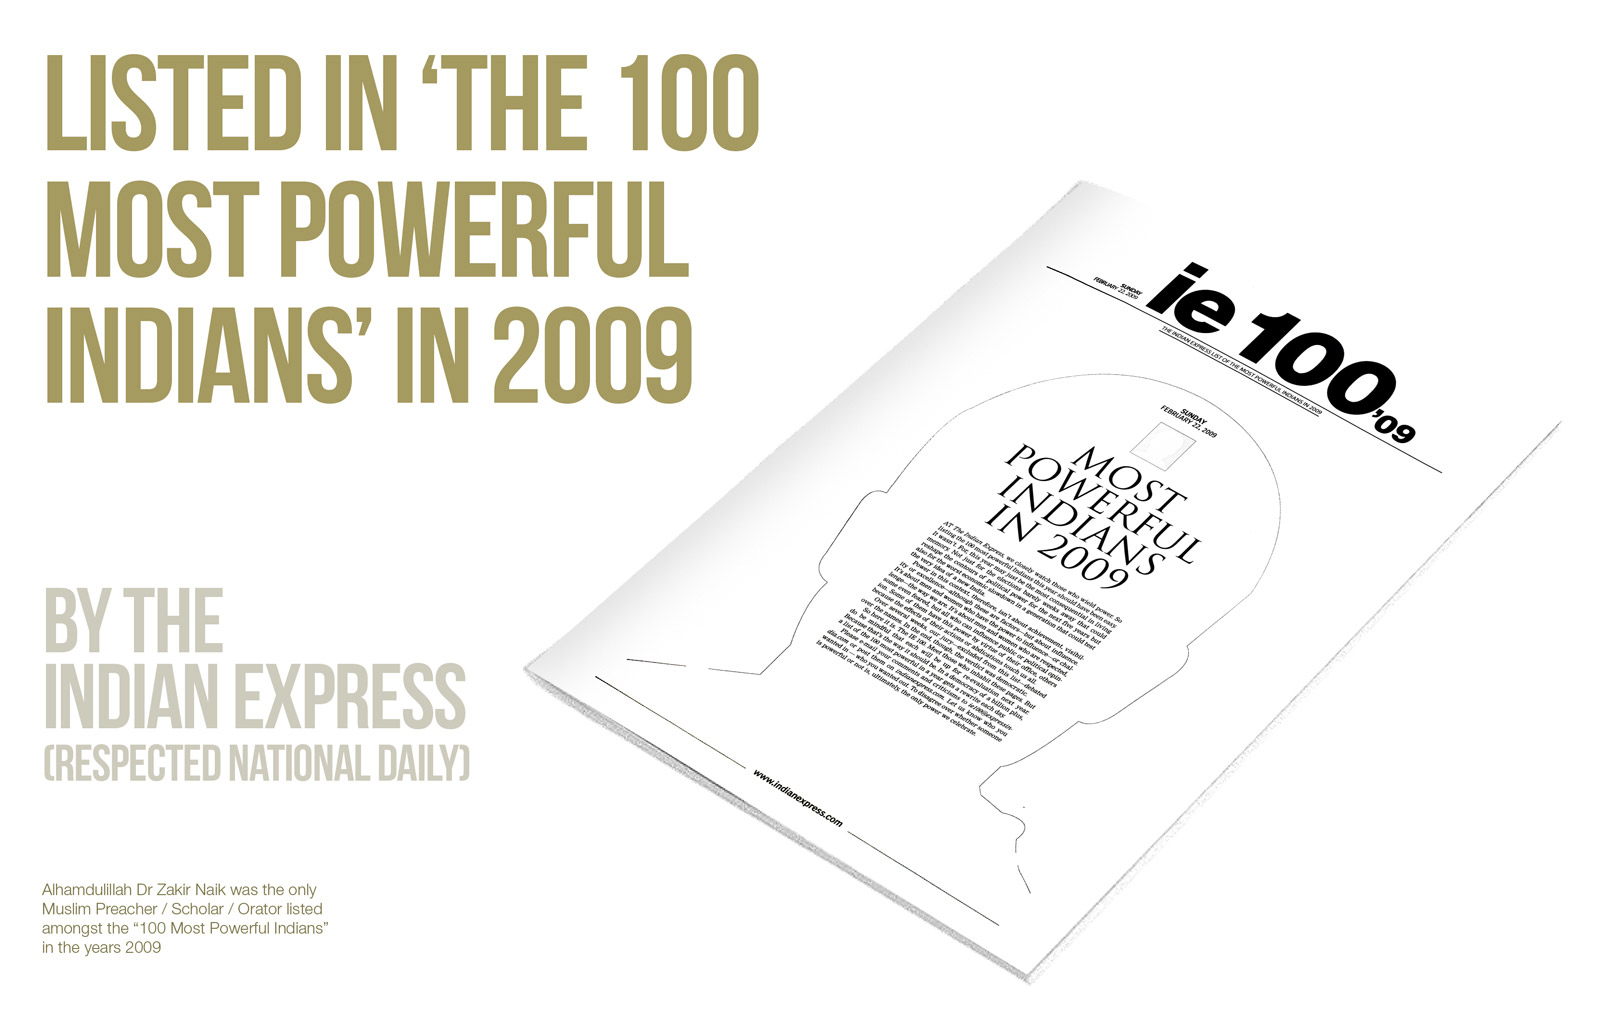 Listed in 'The 100 Most Powerful Indians' – 2009